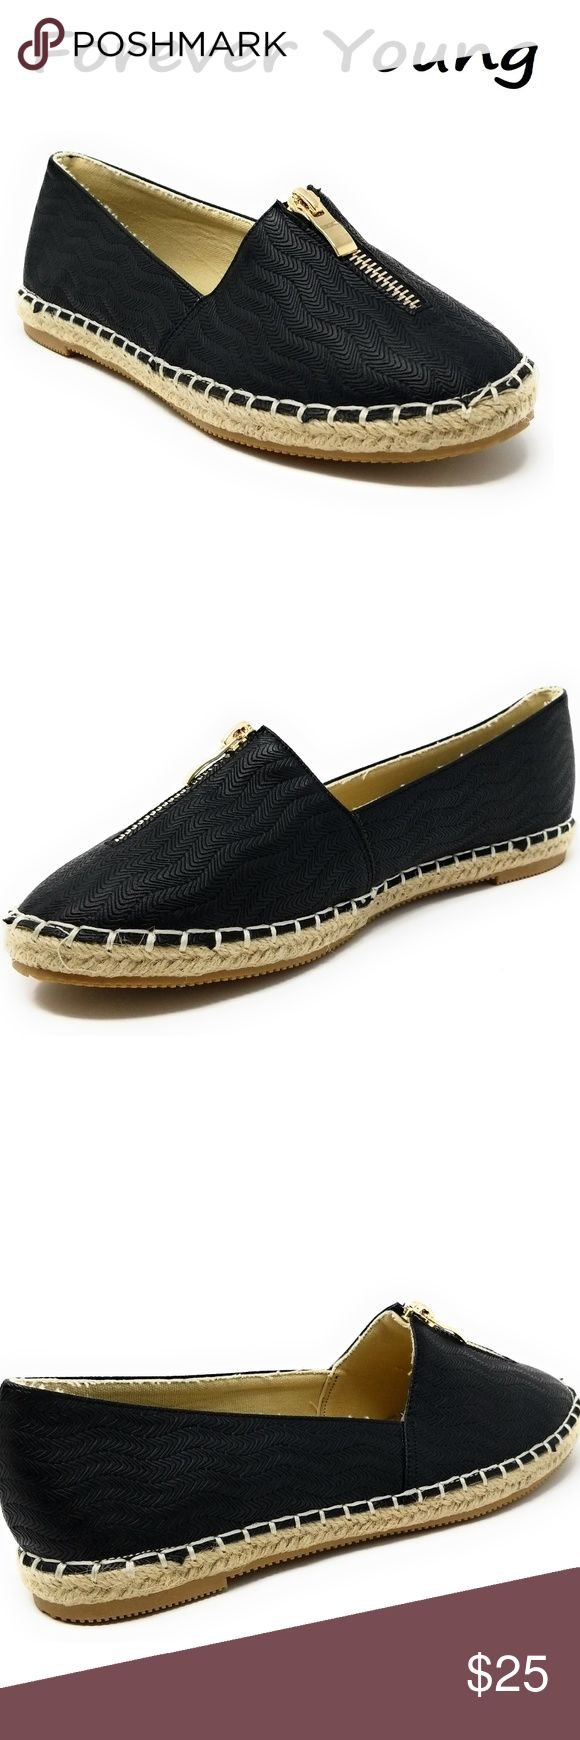 """Women Espadrille Zipper Flats, E-2607, Black Brand new Forever Young super popular stitched espadrille flats in gray with a decorative zipper along the top. Extra soft insoles. Textured rubber outer sole for traction. 100% man made.  Measurements: sizes 6 through 8 are true to size. Sizes 8.5 - 11 run small. Standard 3 inch width. Size 8 measures 9.5 inches, sz 8.5 = 9 3/4"""", sz 9 = 10"""", sz 10 = 10.5"""", size 11 fits a true size 9.5 wearer. A true statement in ladies shoes fashion! Forever…"""